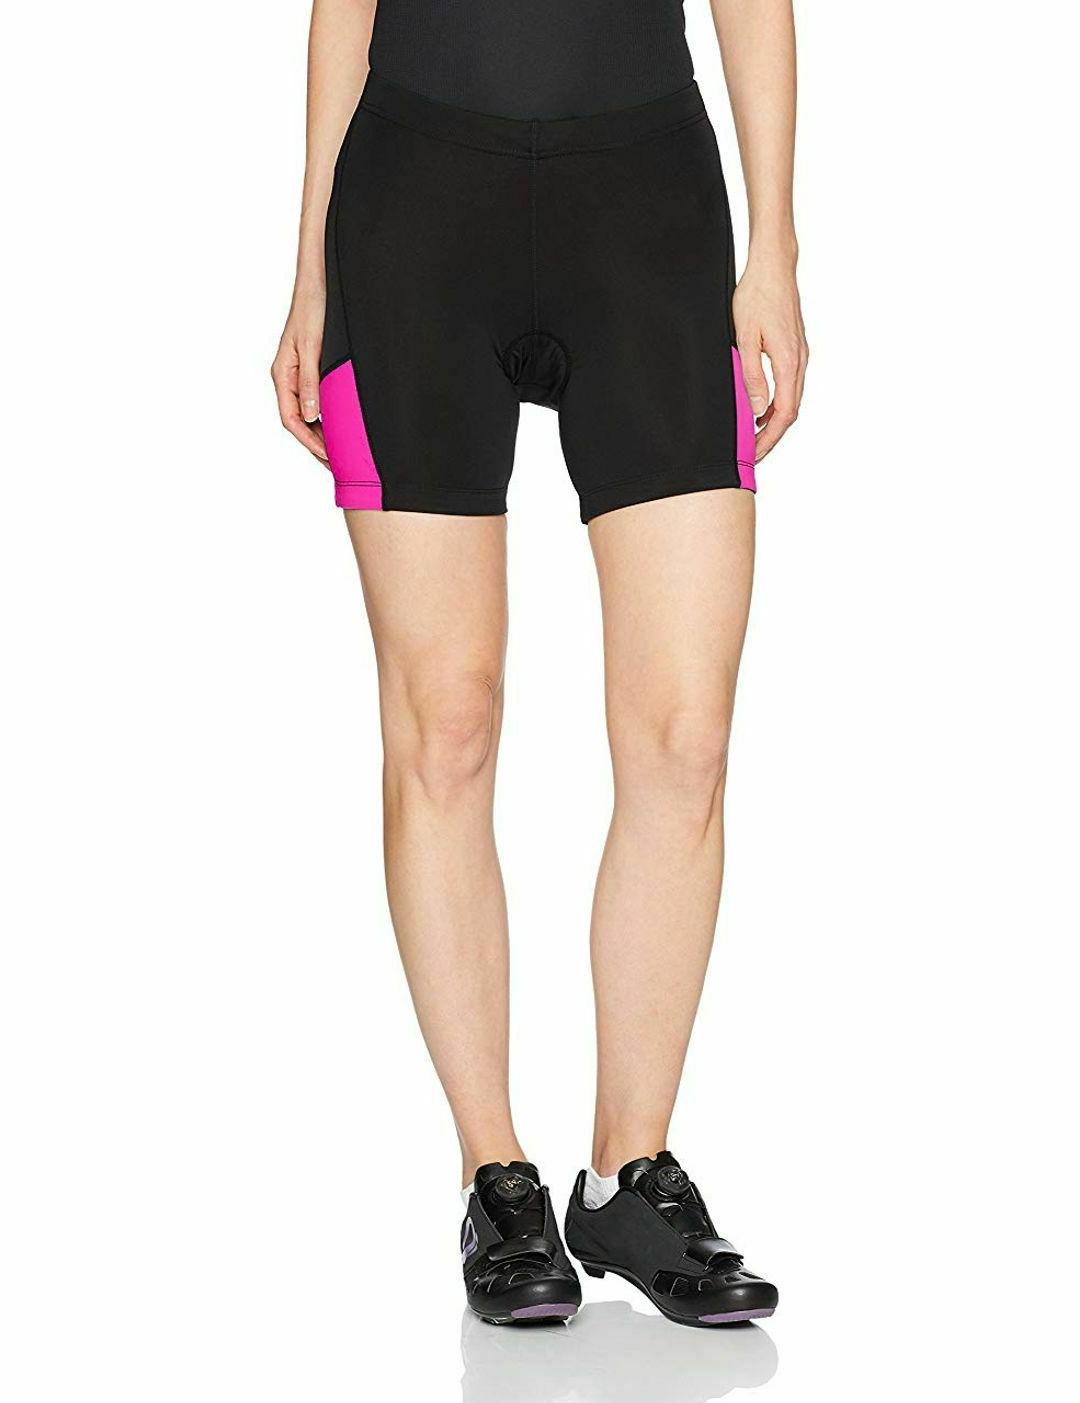 dream shorts cycling bike padded panther pink